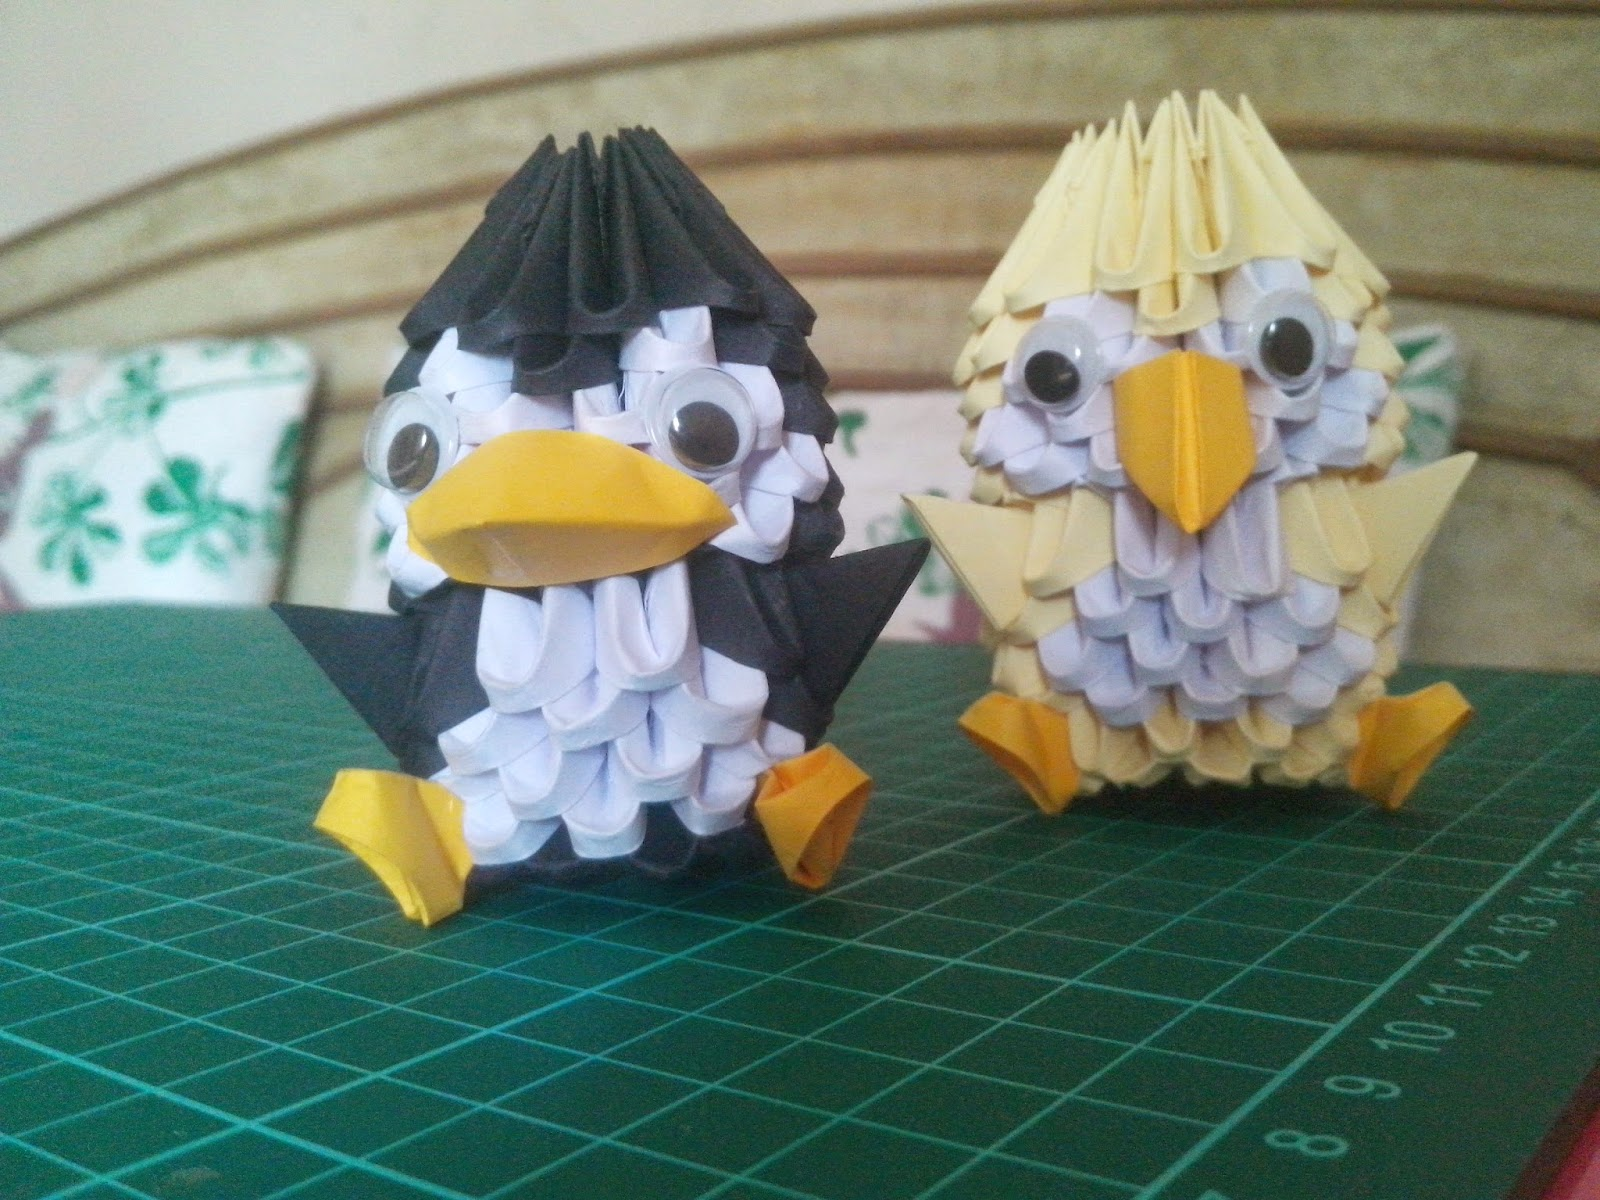 Kaurscrafts: 3d Origami penguin, chicken and dragon boat - photo#16